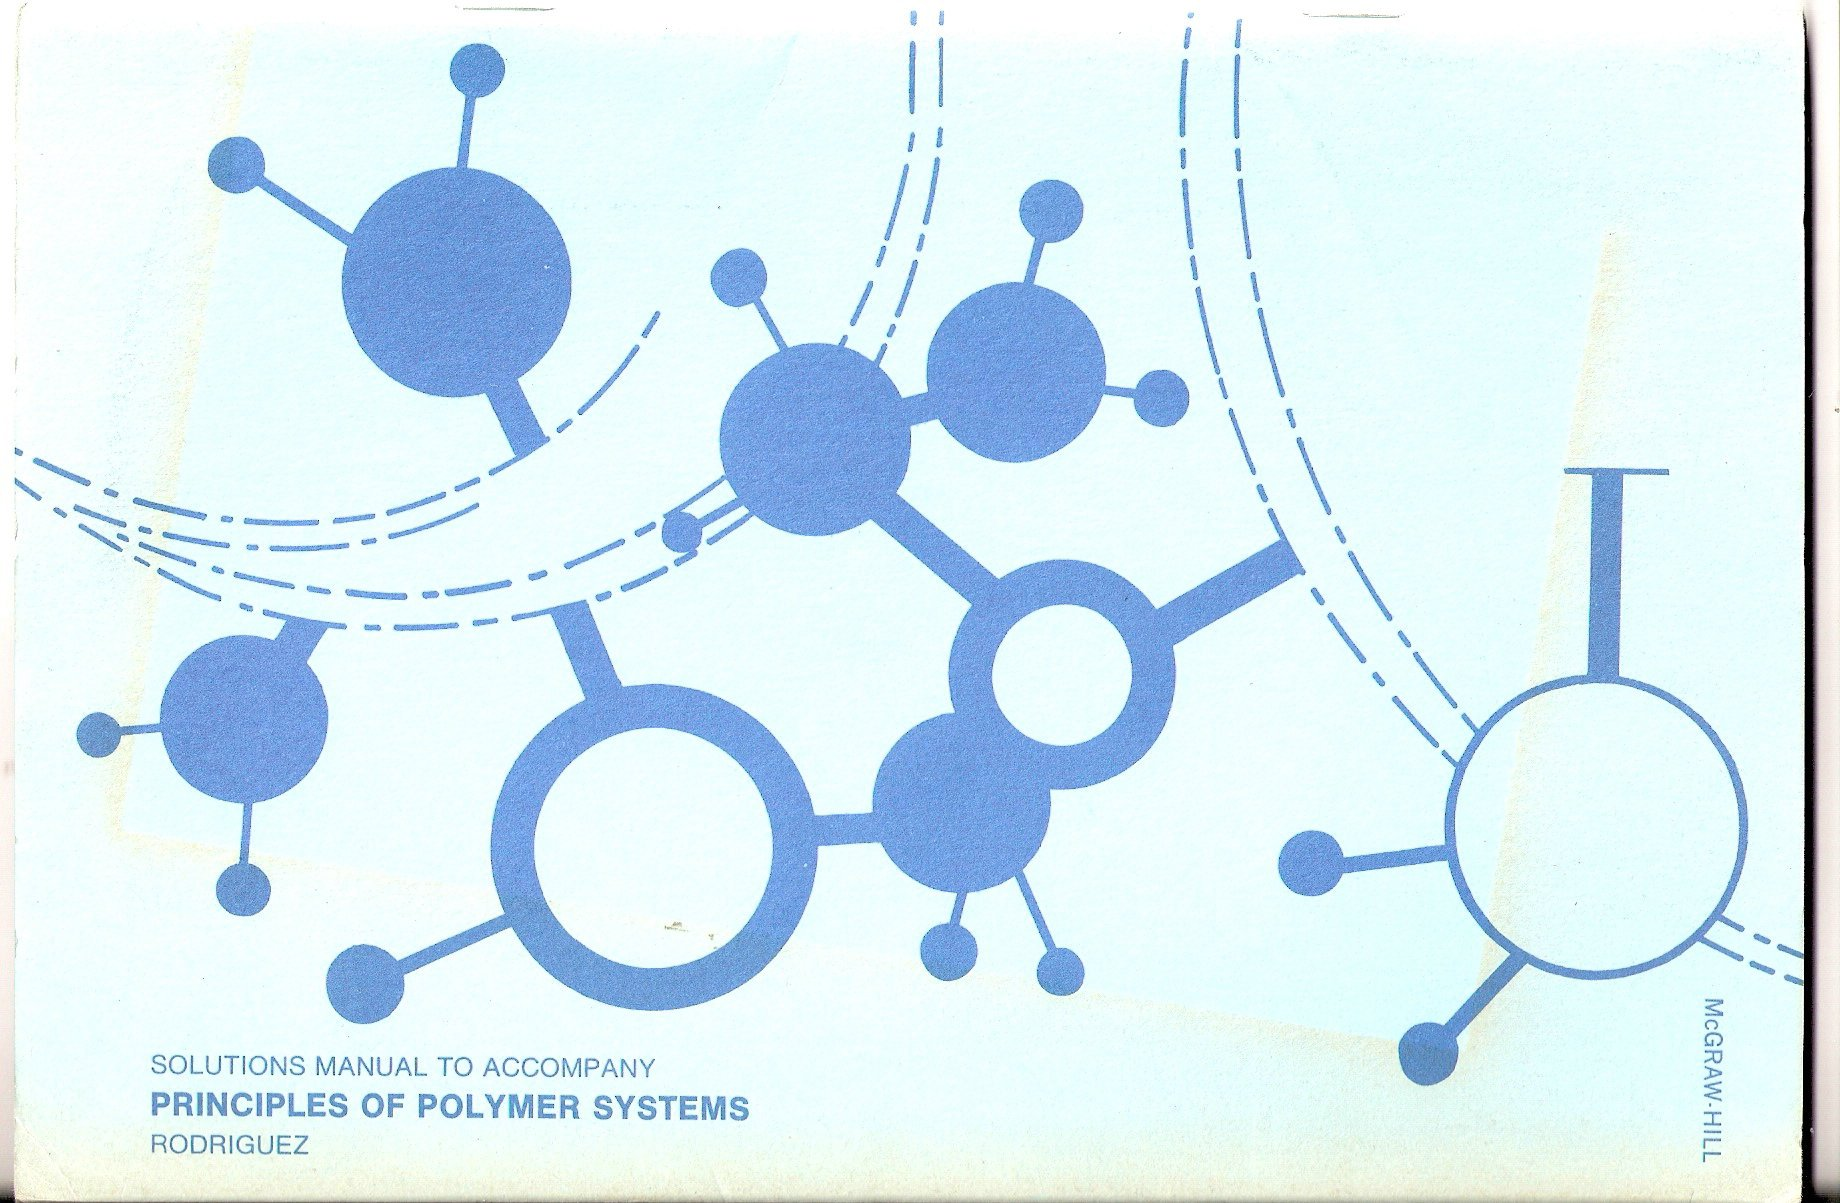 Solutions Manual to Accompany Principles of Polymer Systems: Ferdinand  Rodriguez: 9780070533813: Amazon.com: Books